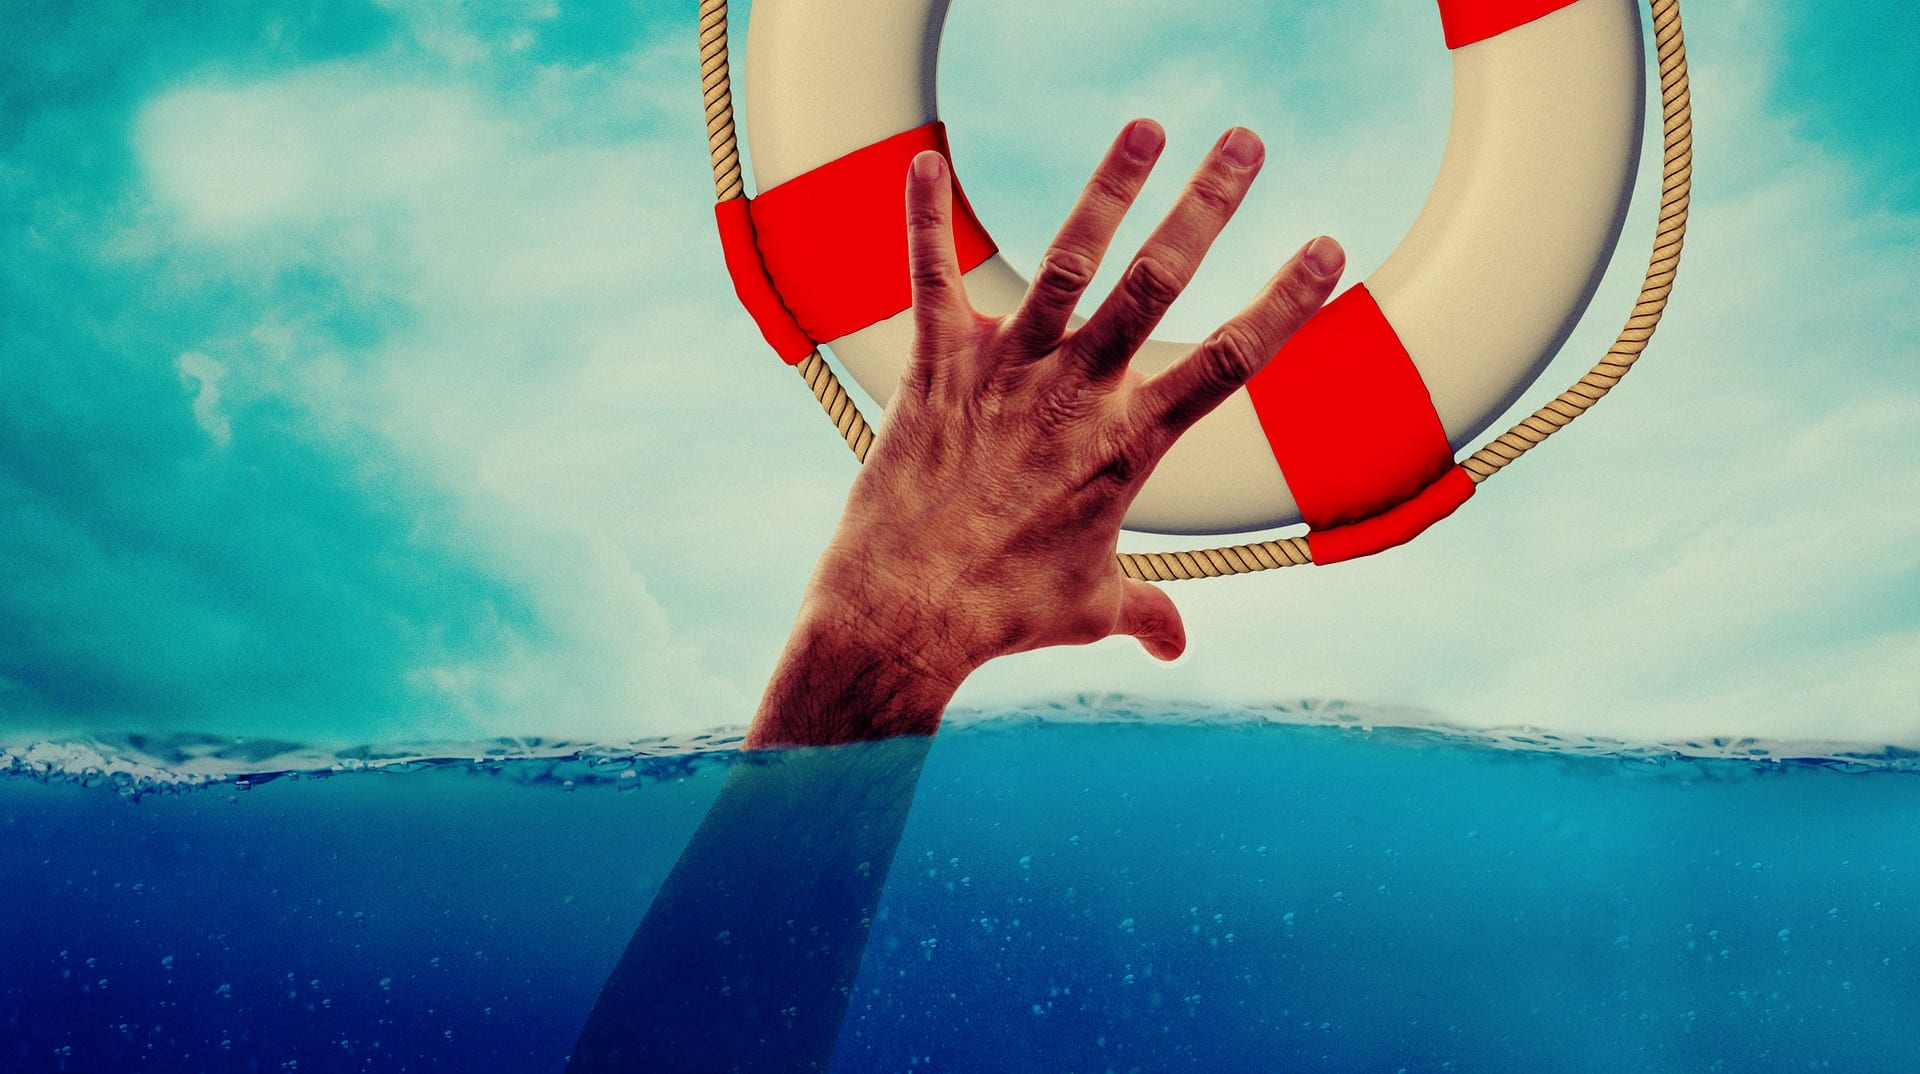 man grabbing a lifesaver ring